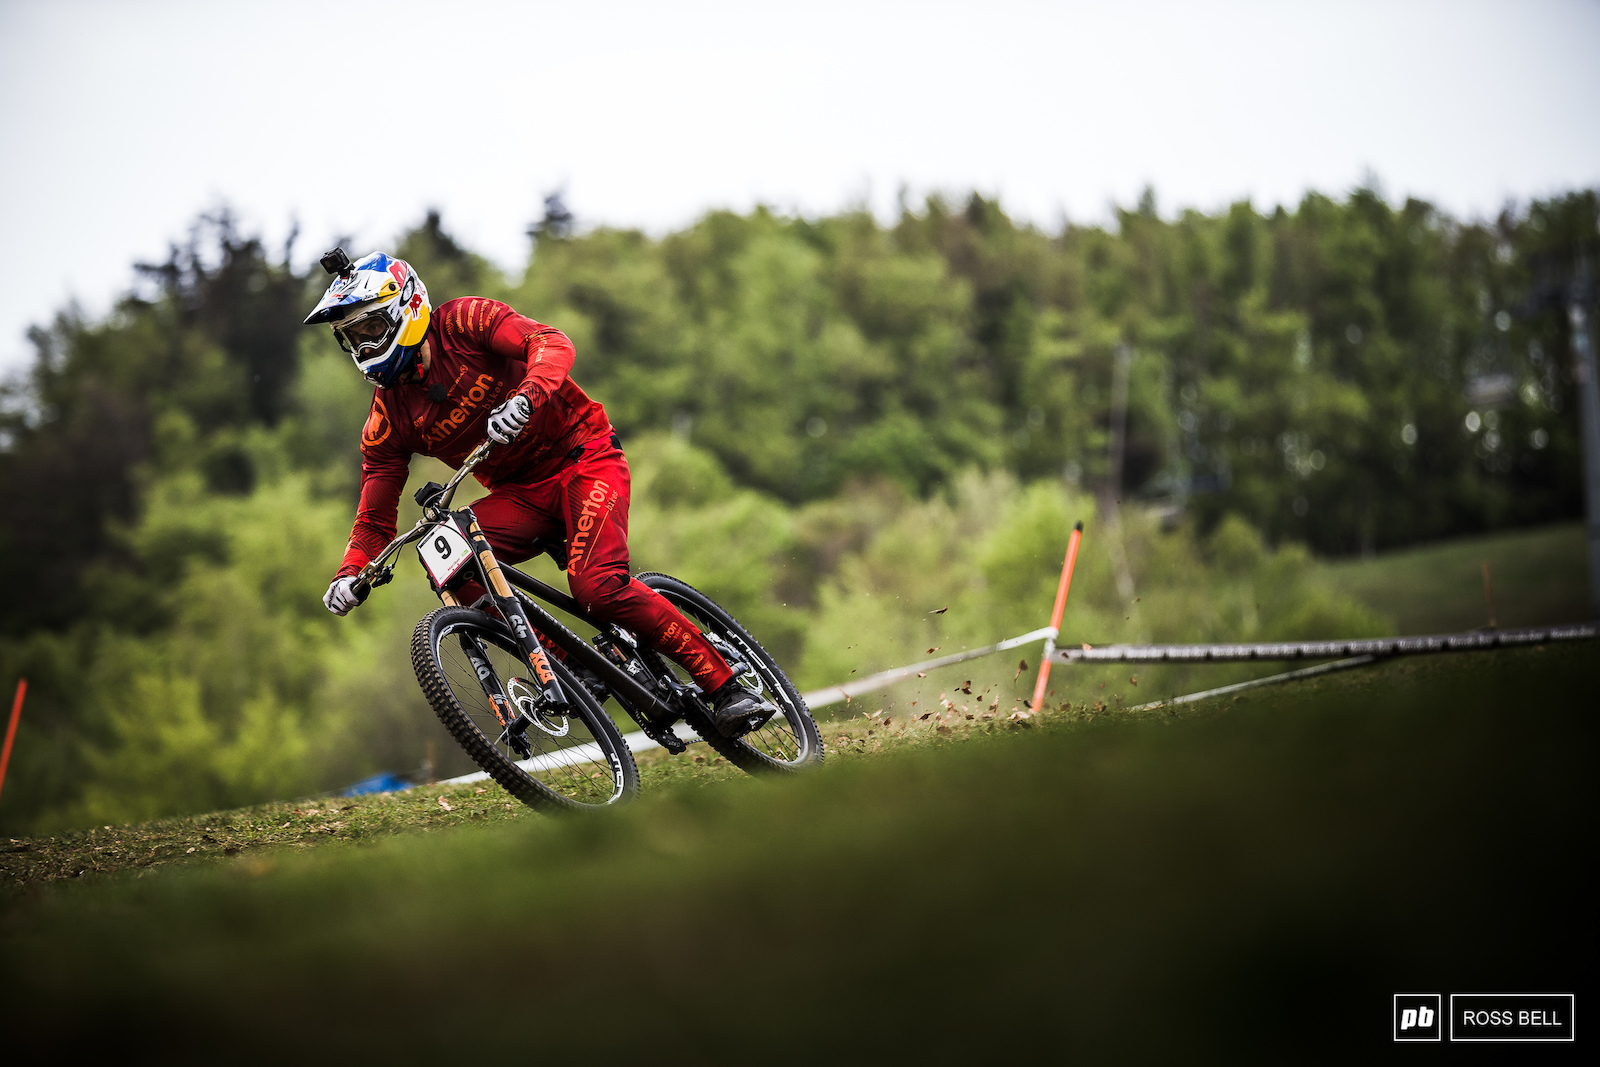 First man on track this afternoon. Gee Atherton getting to grips with the course preview.